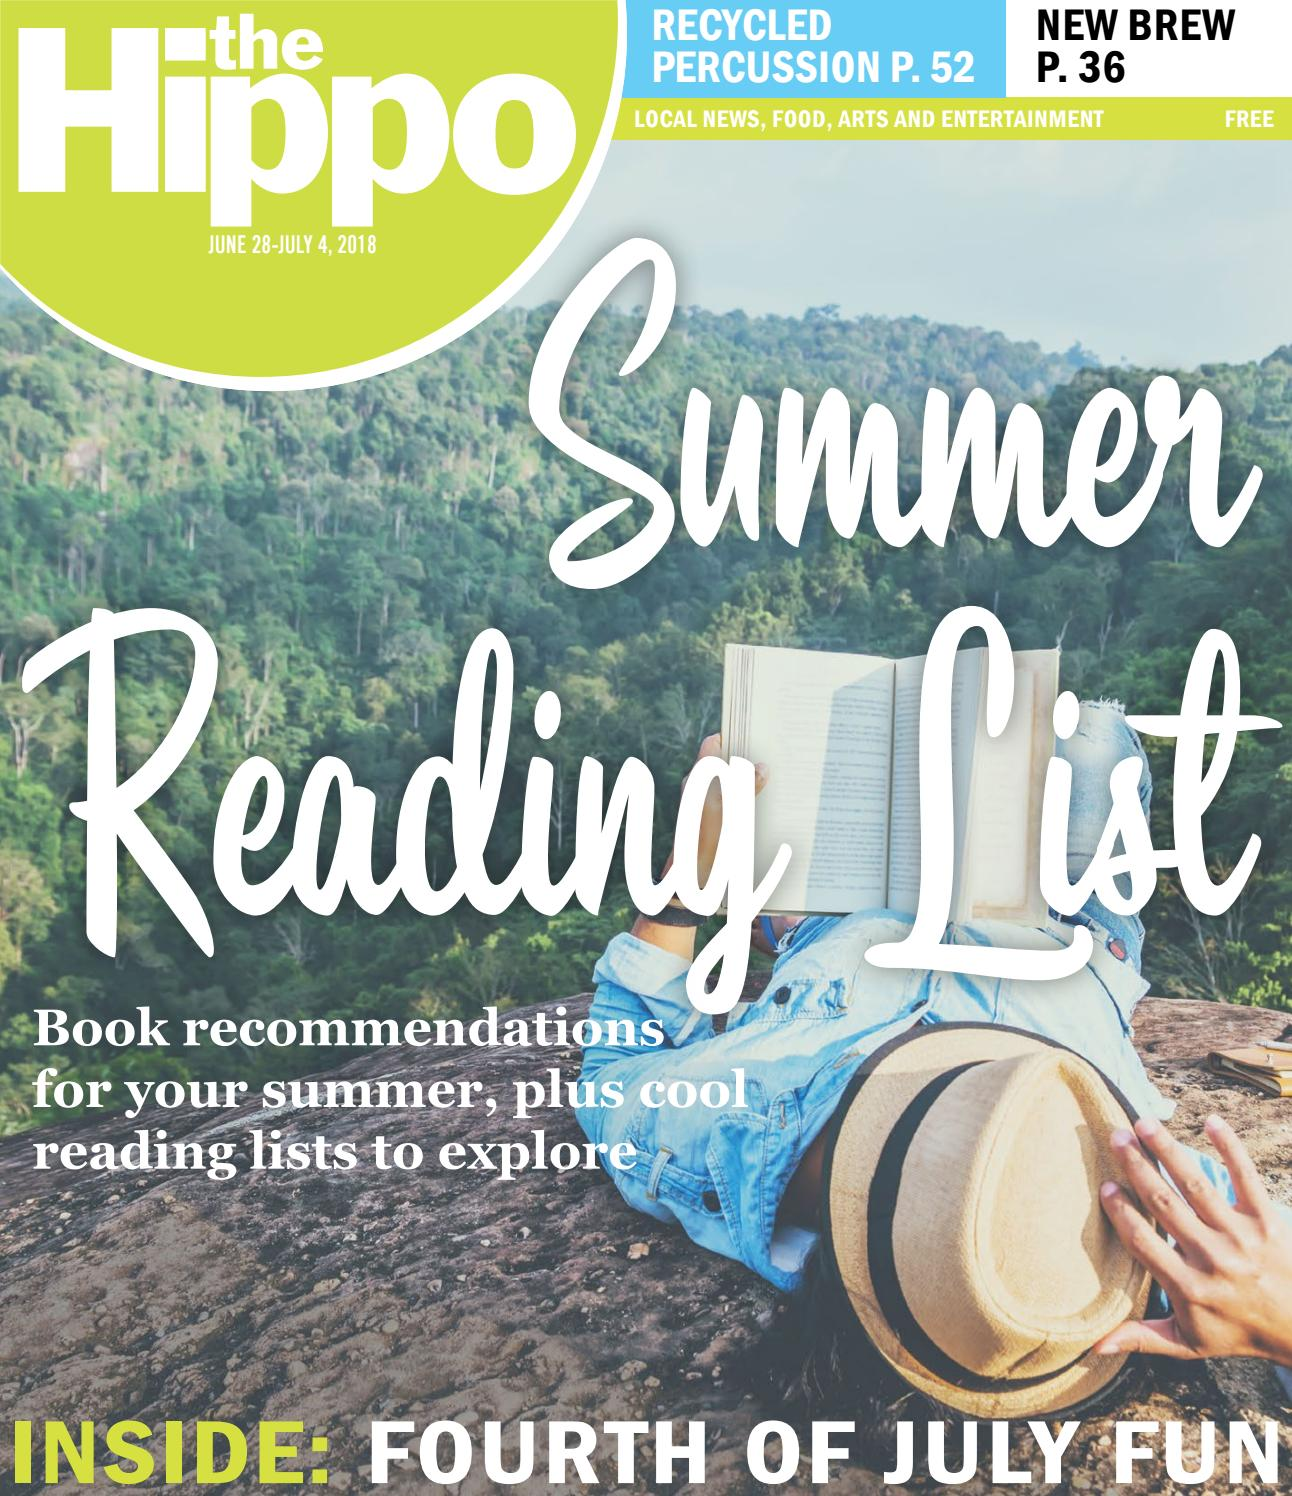 784b522735a4 Hippo 6-28-18 by The Hippo - issuu